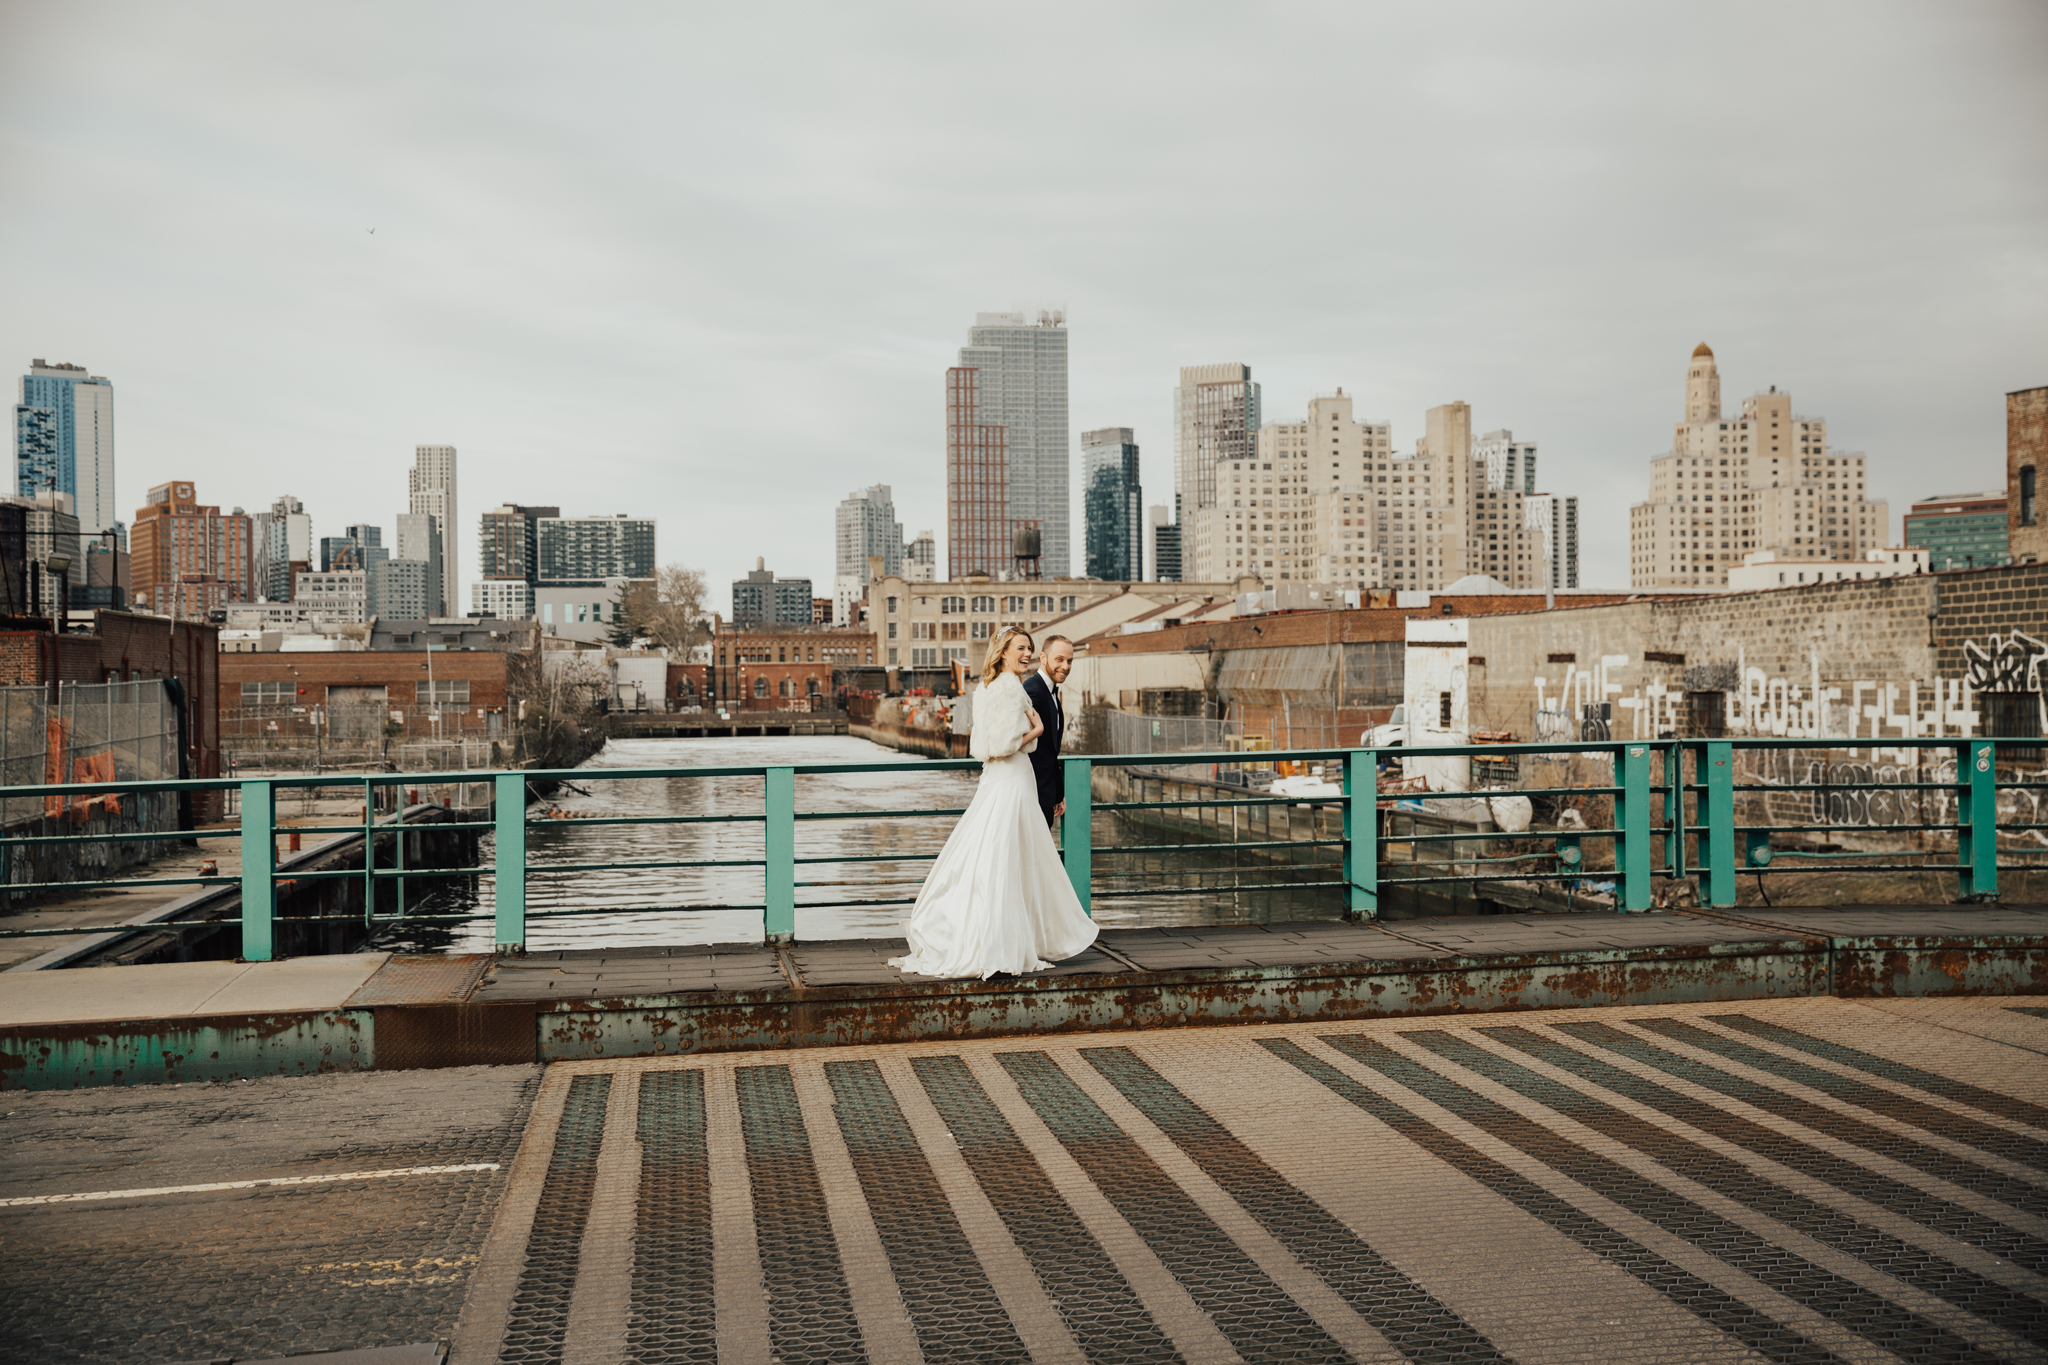 rad couples getting married